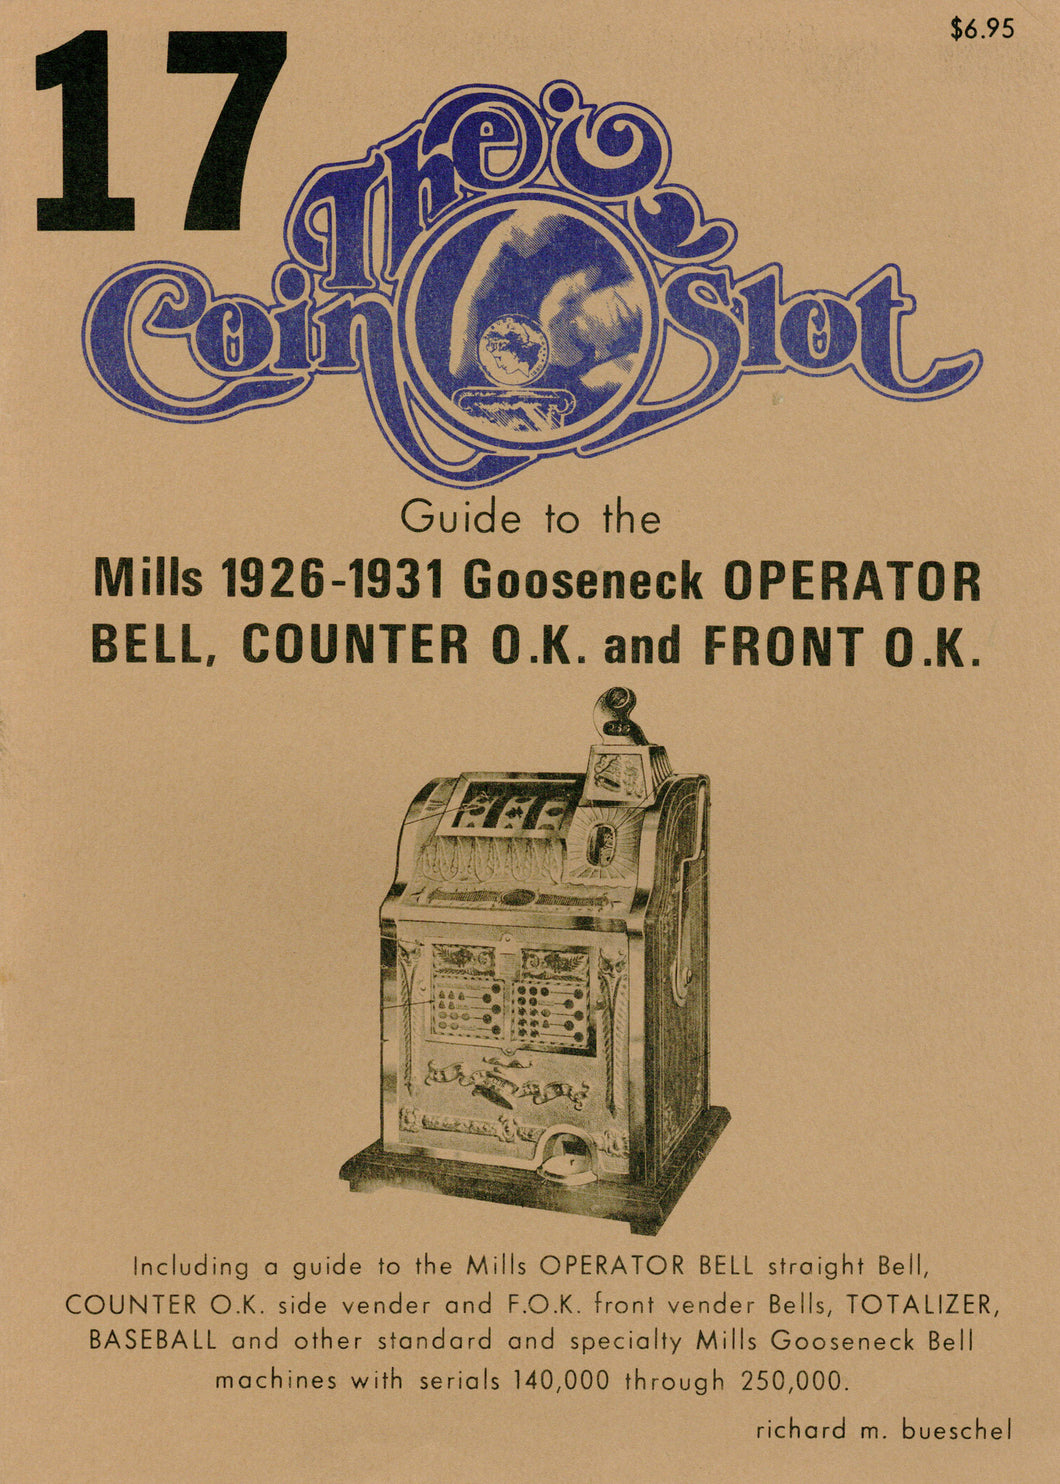 Coin Slot #17. Guide to the Mills 1926-1931 Gooseneck Operator Bell, Counter O.K. and Front O.K.